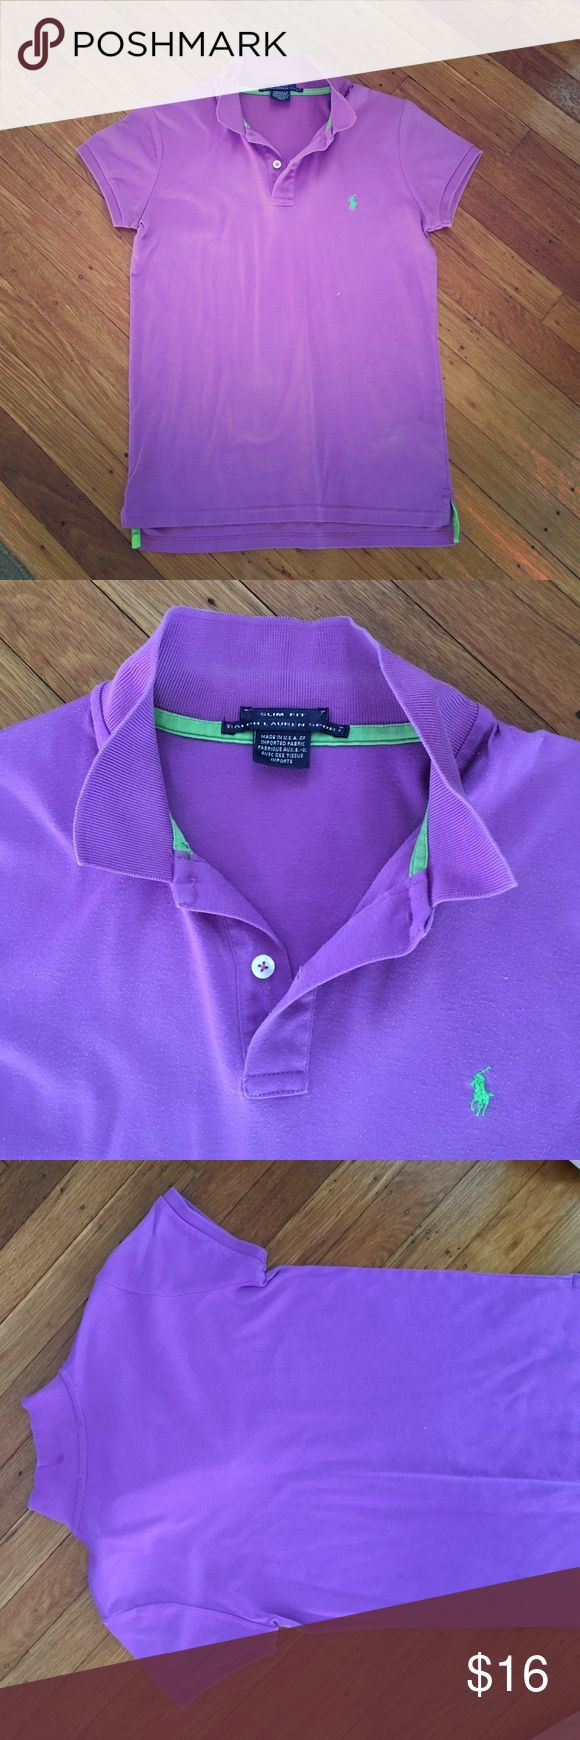 Ralph Lauren Sport Slim Fit Polo 👚 Well loved slim fit polo shirt by Ralph Lauren Sport. Unique deep lilac color with neon green logo. Slight piling but non noticeable when on. Perfect for that casual preppy look. Feminine cap sleeves. 100% cotton. Size M on tag but slim fit so perfect for a size small person. Ralph Lauren Tops